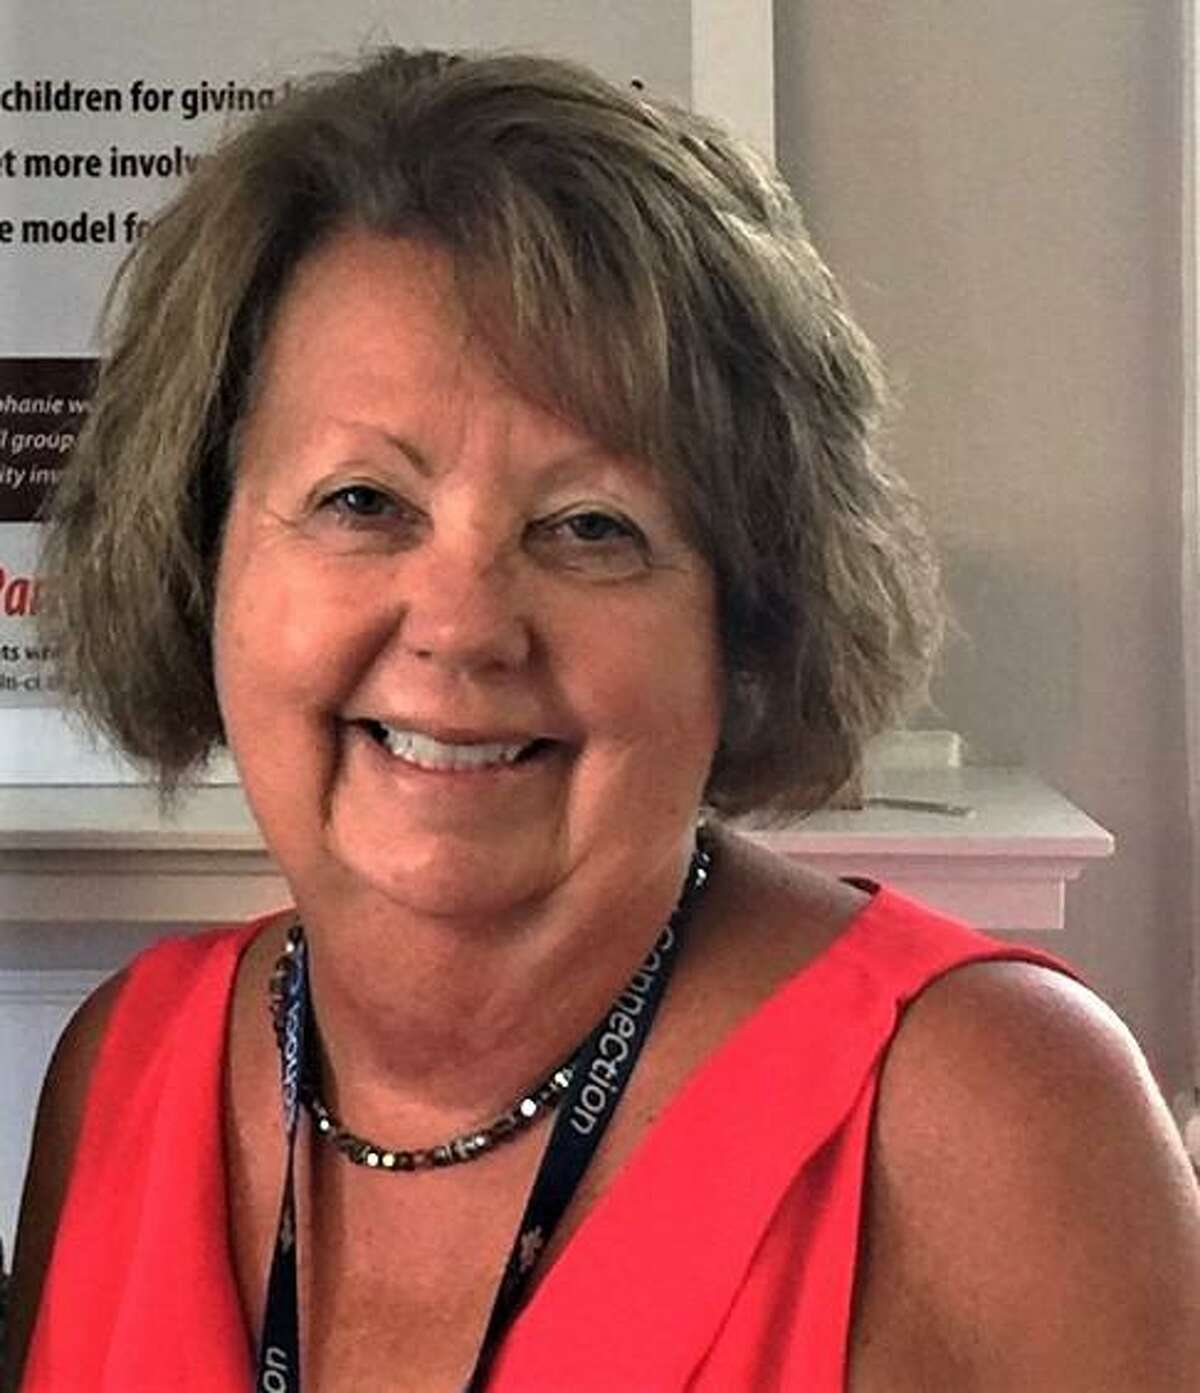 Donna Marino is the Community Partnership Coordinator at the Middletown Public Schools.